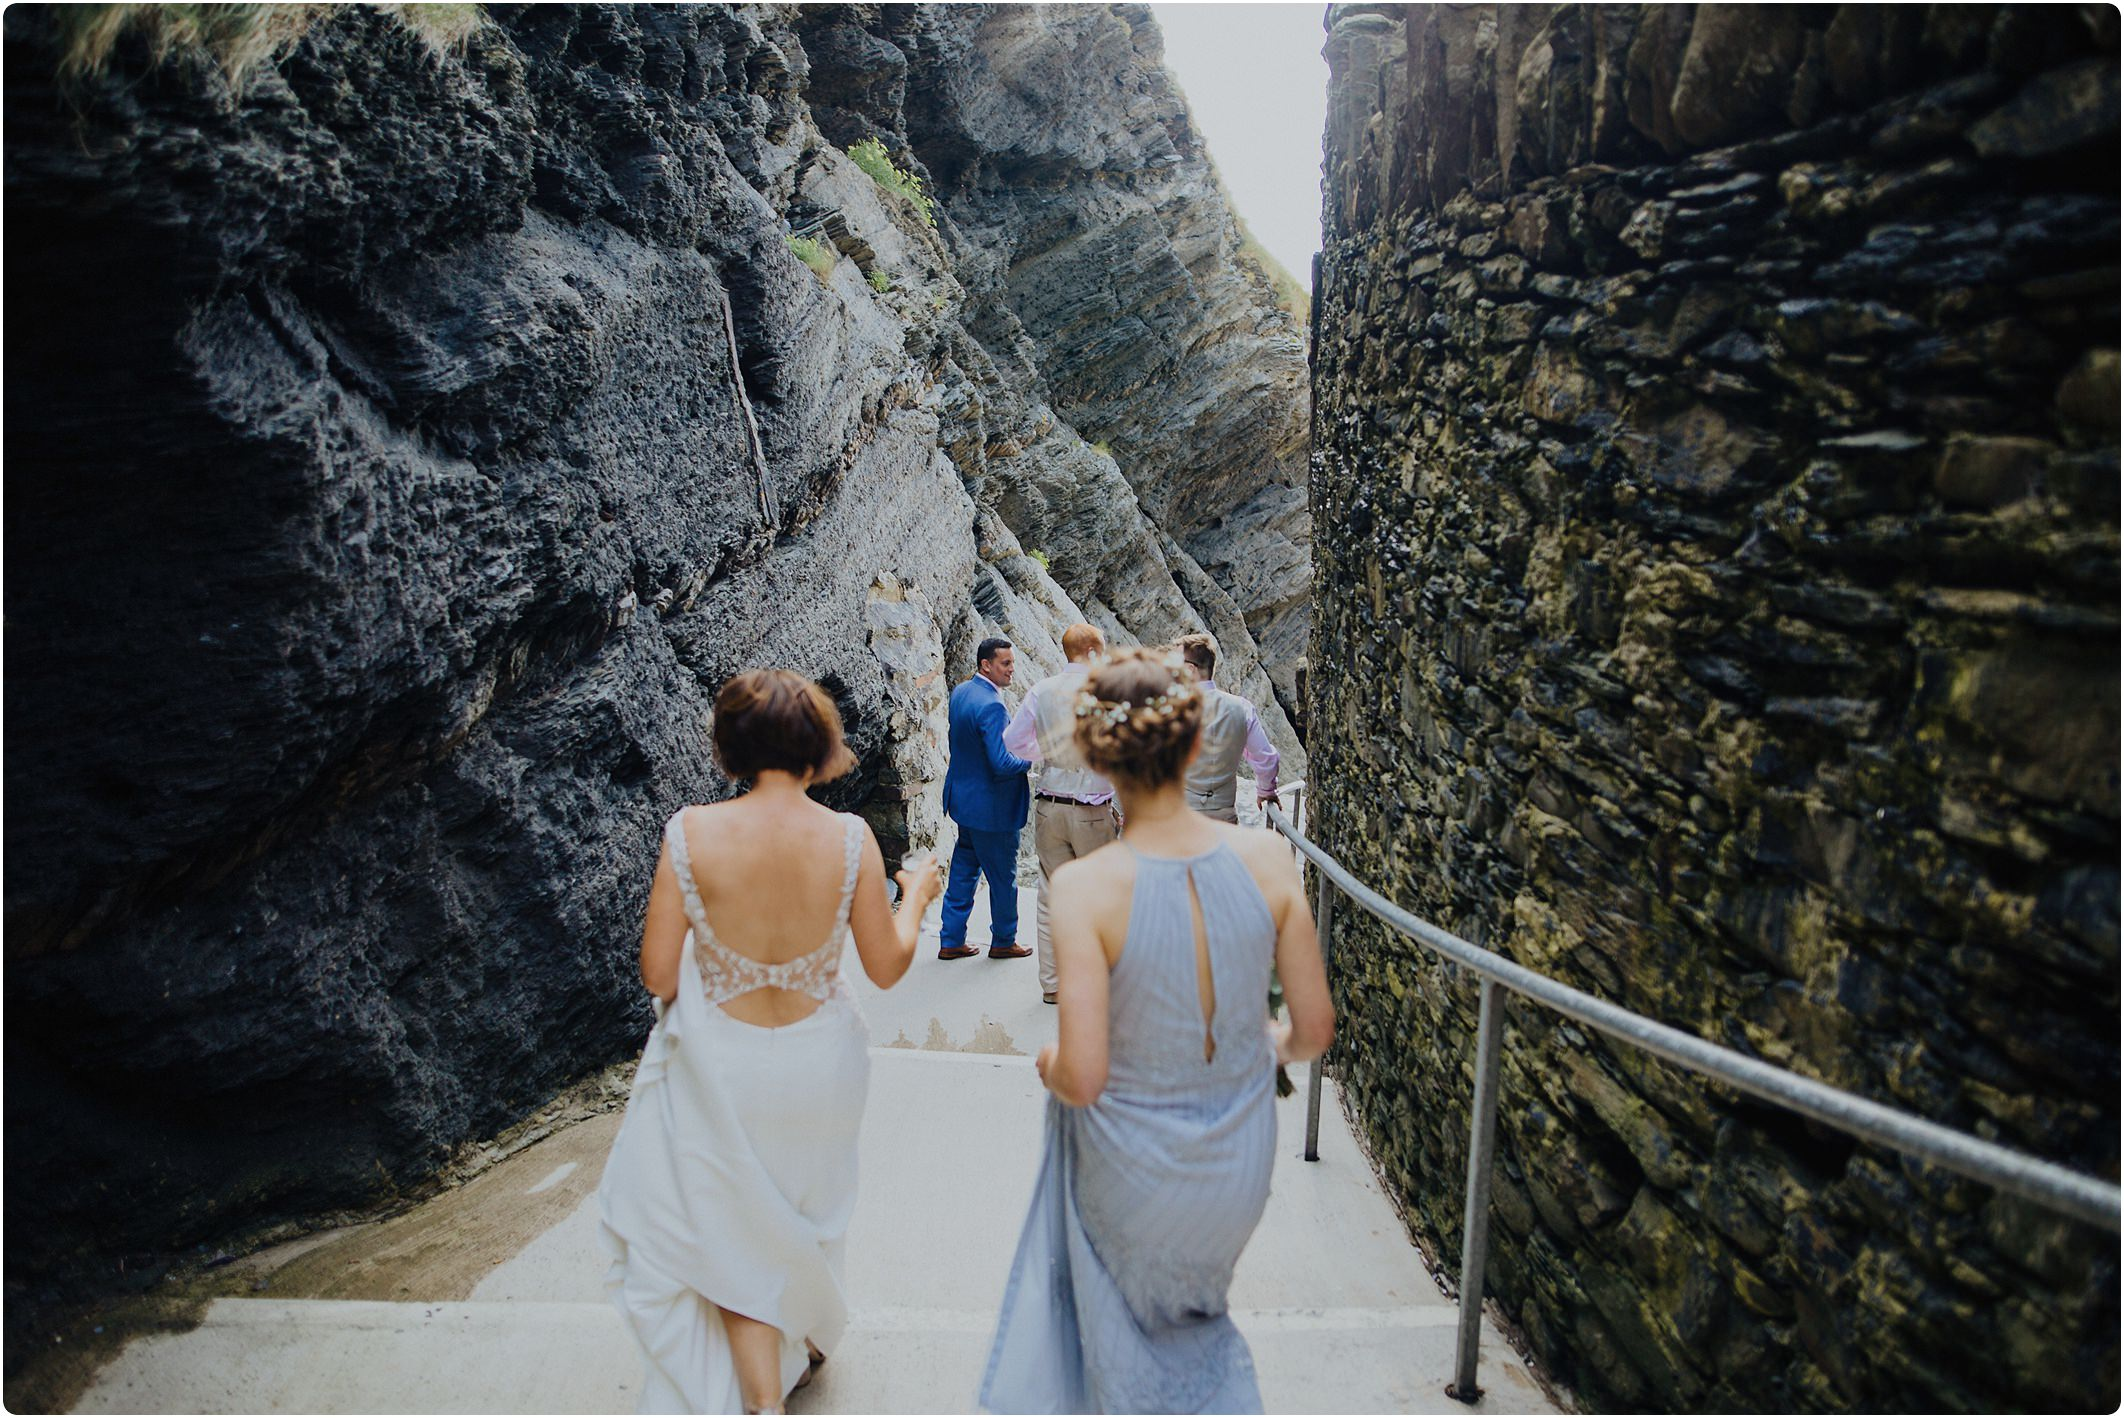 the walk down to the beach at a tunnels beach wedding